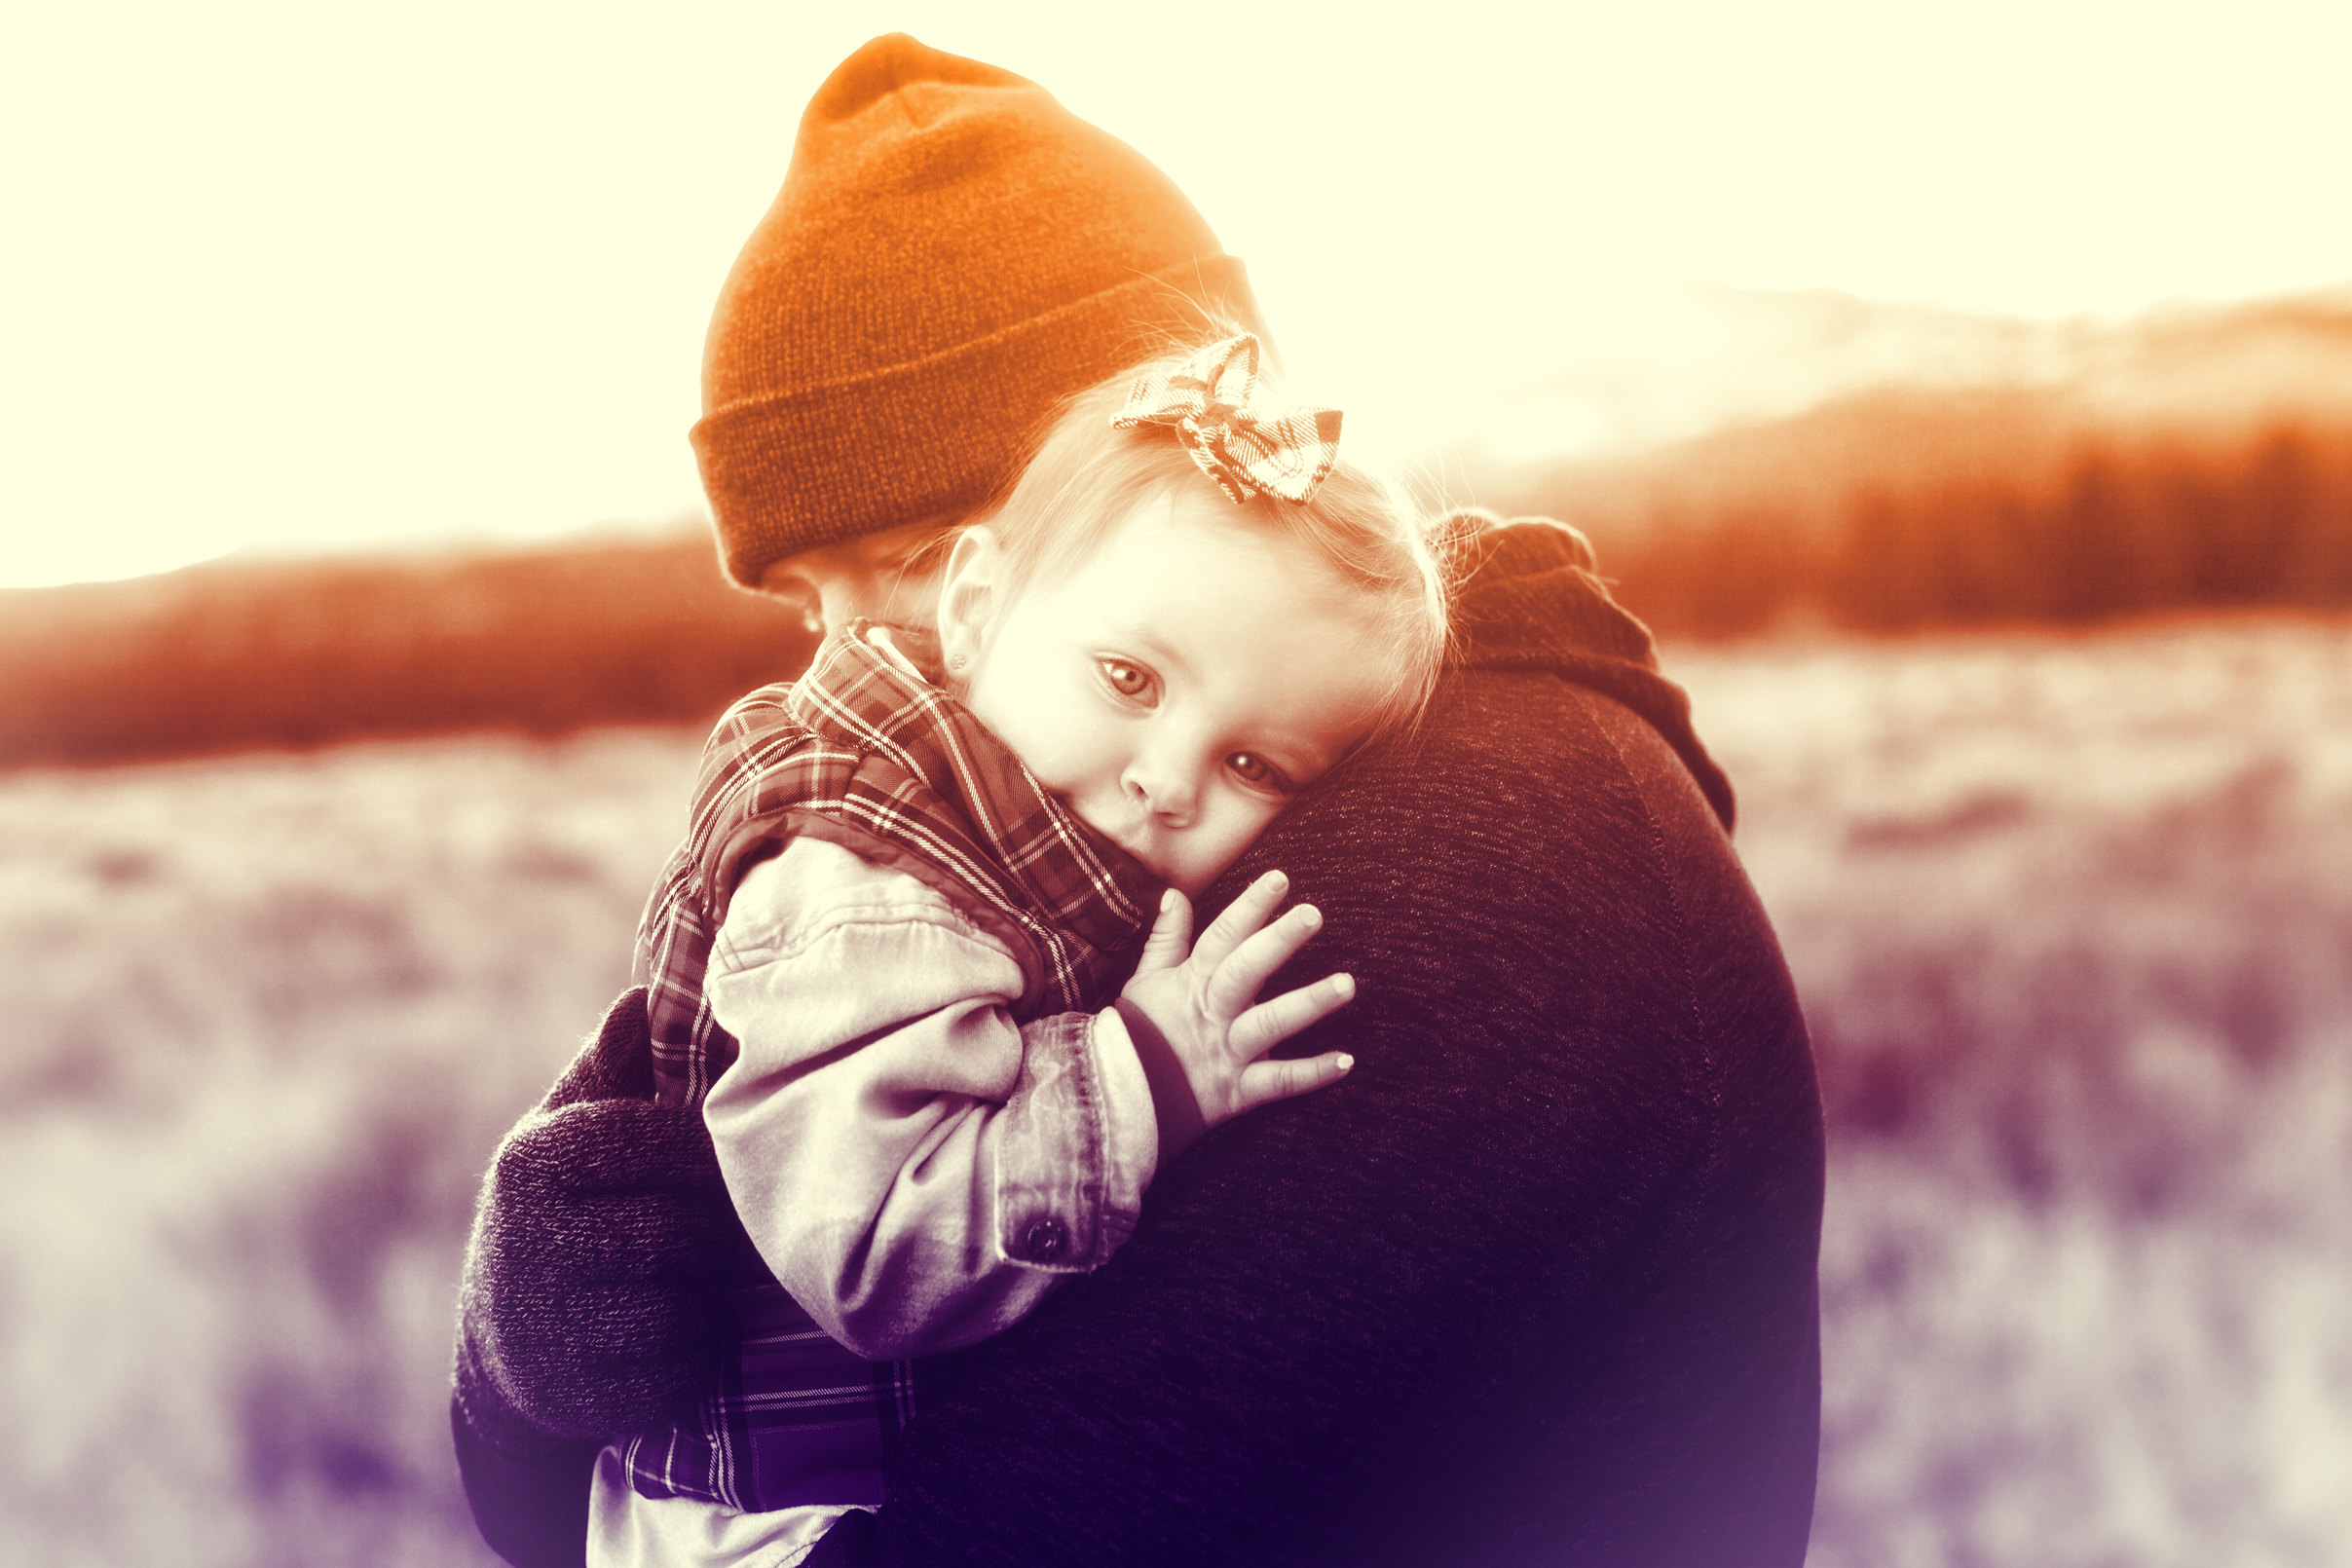 Father Love - A Father Holding Her Baby Girl, Away, Offspring, Pickingup, Person, HQ Photo